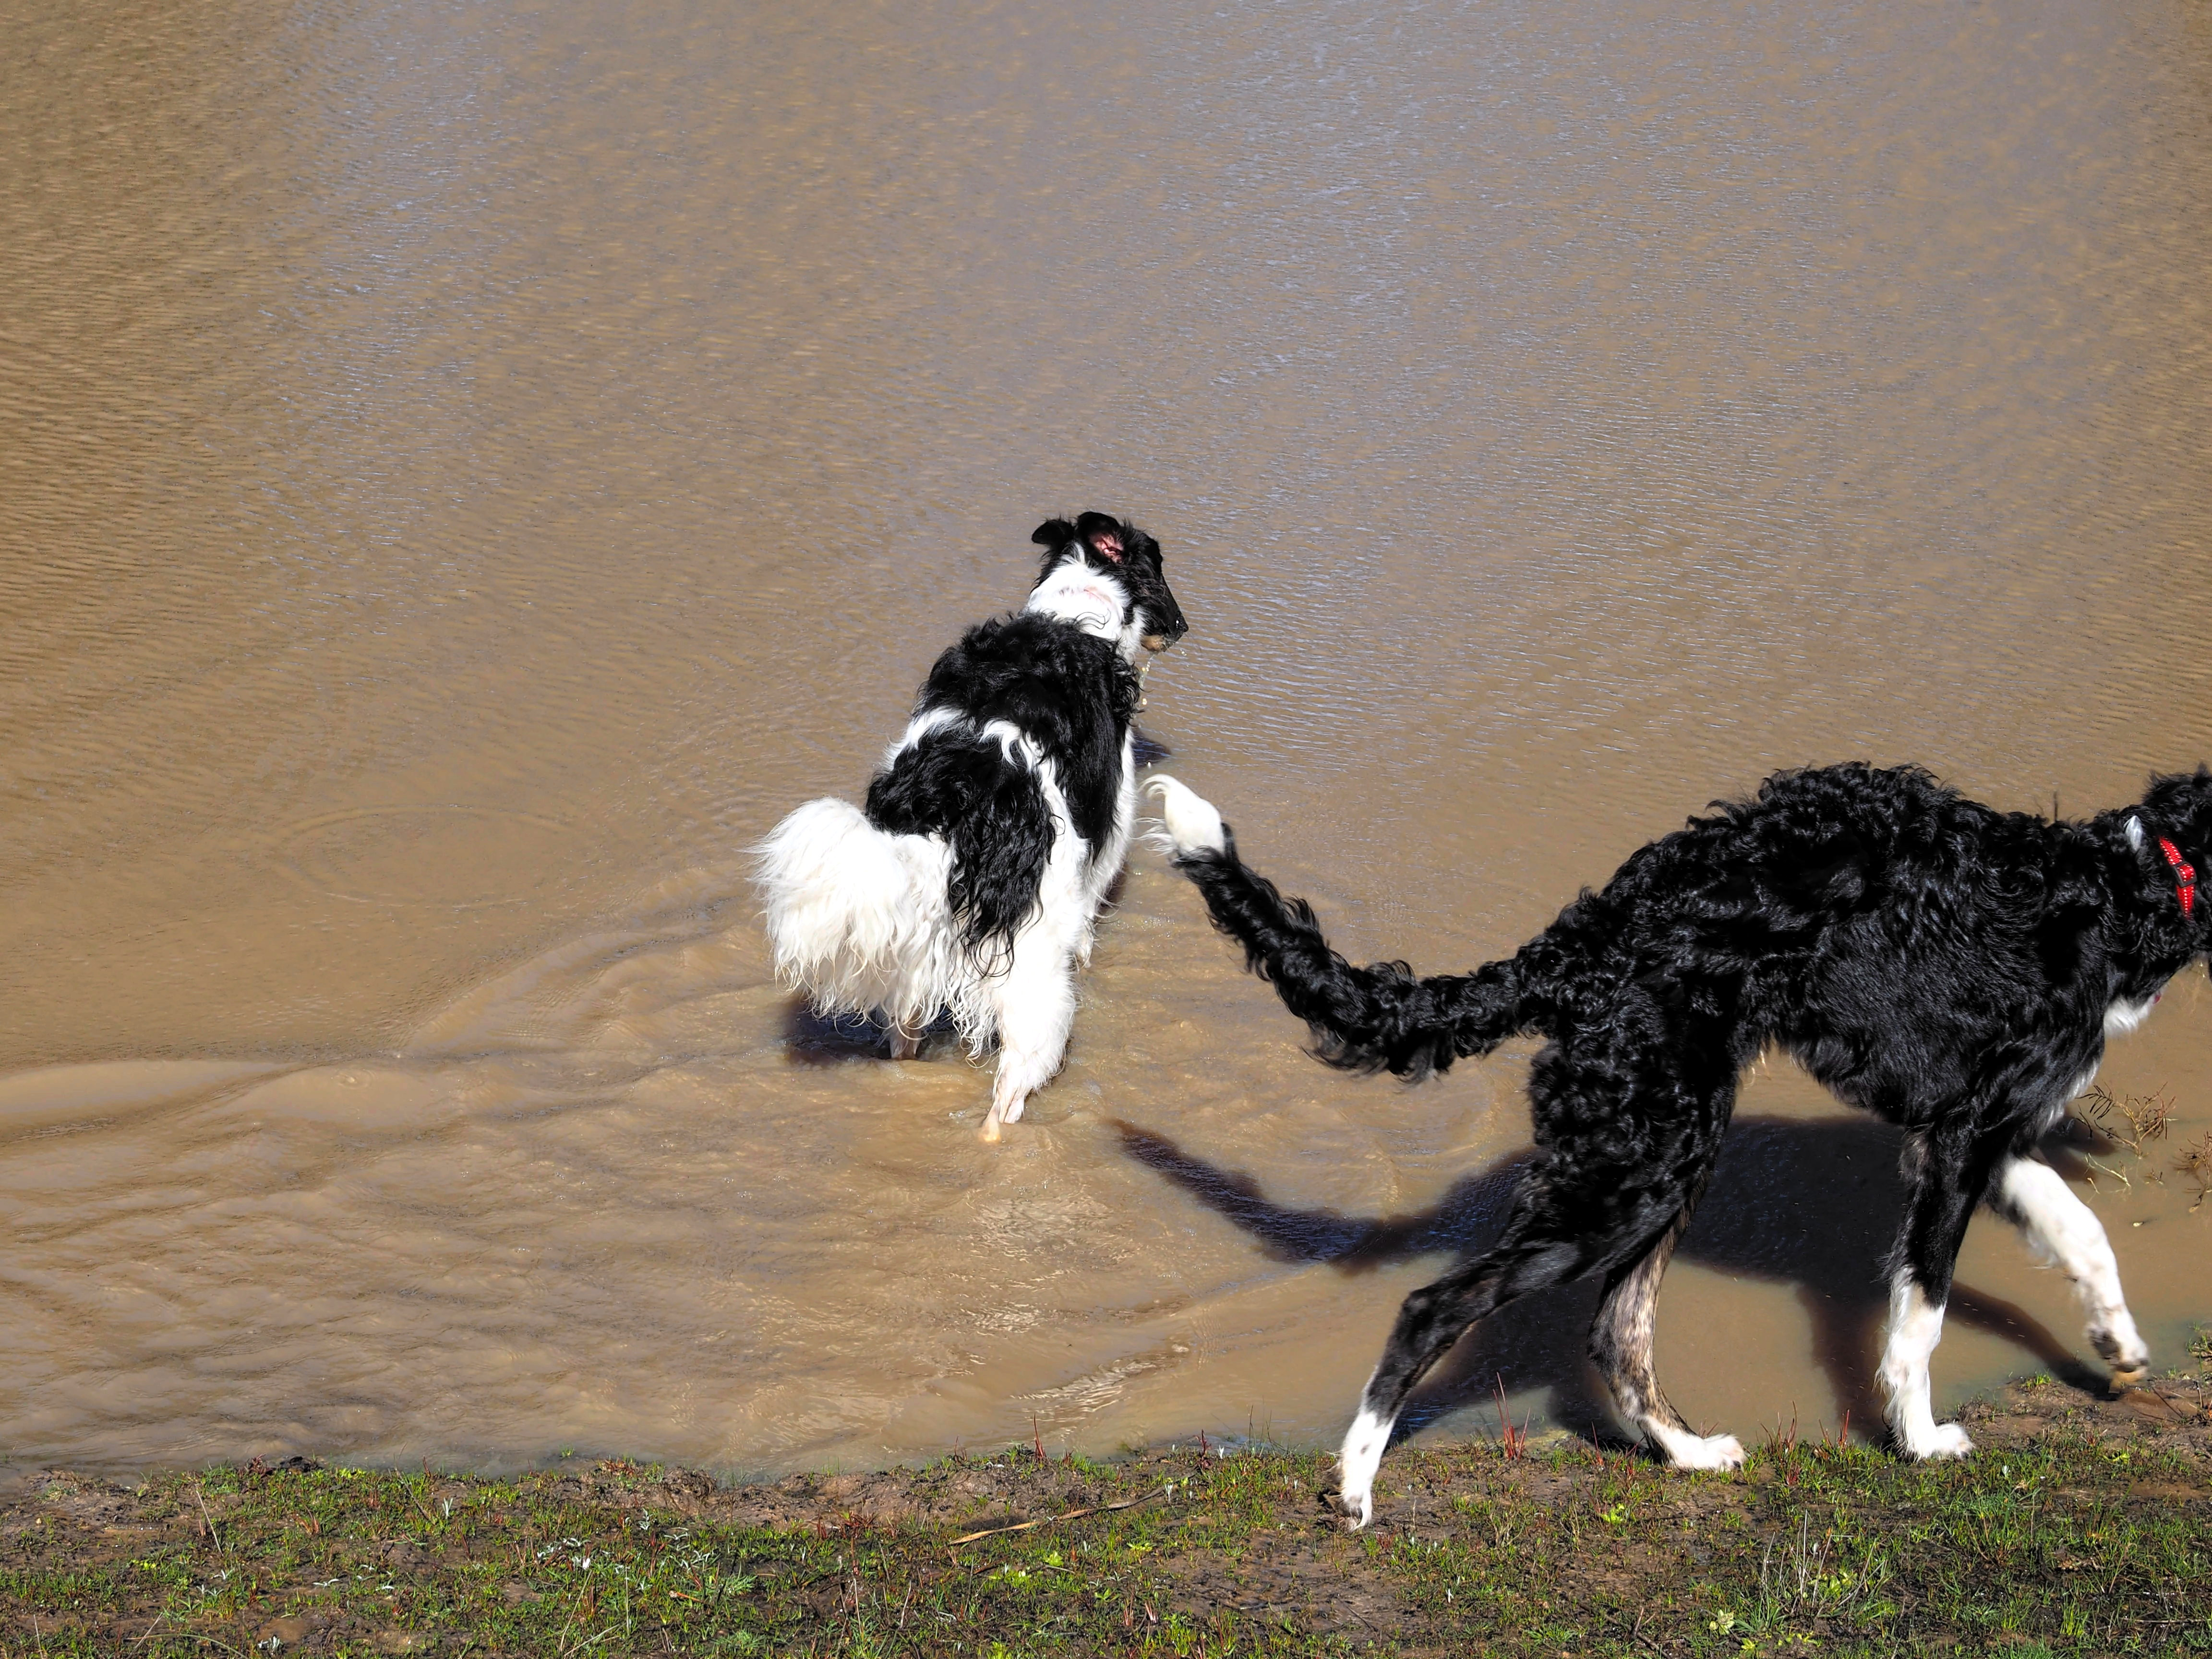 Dogs-in-pond-4.jpeg